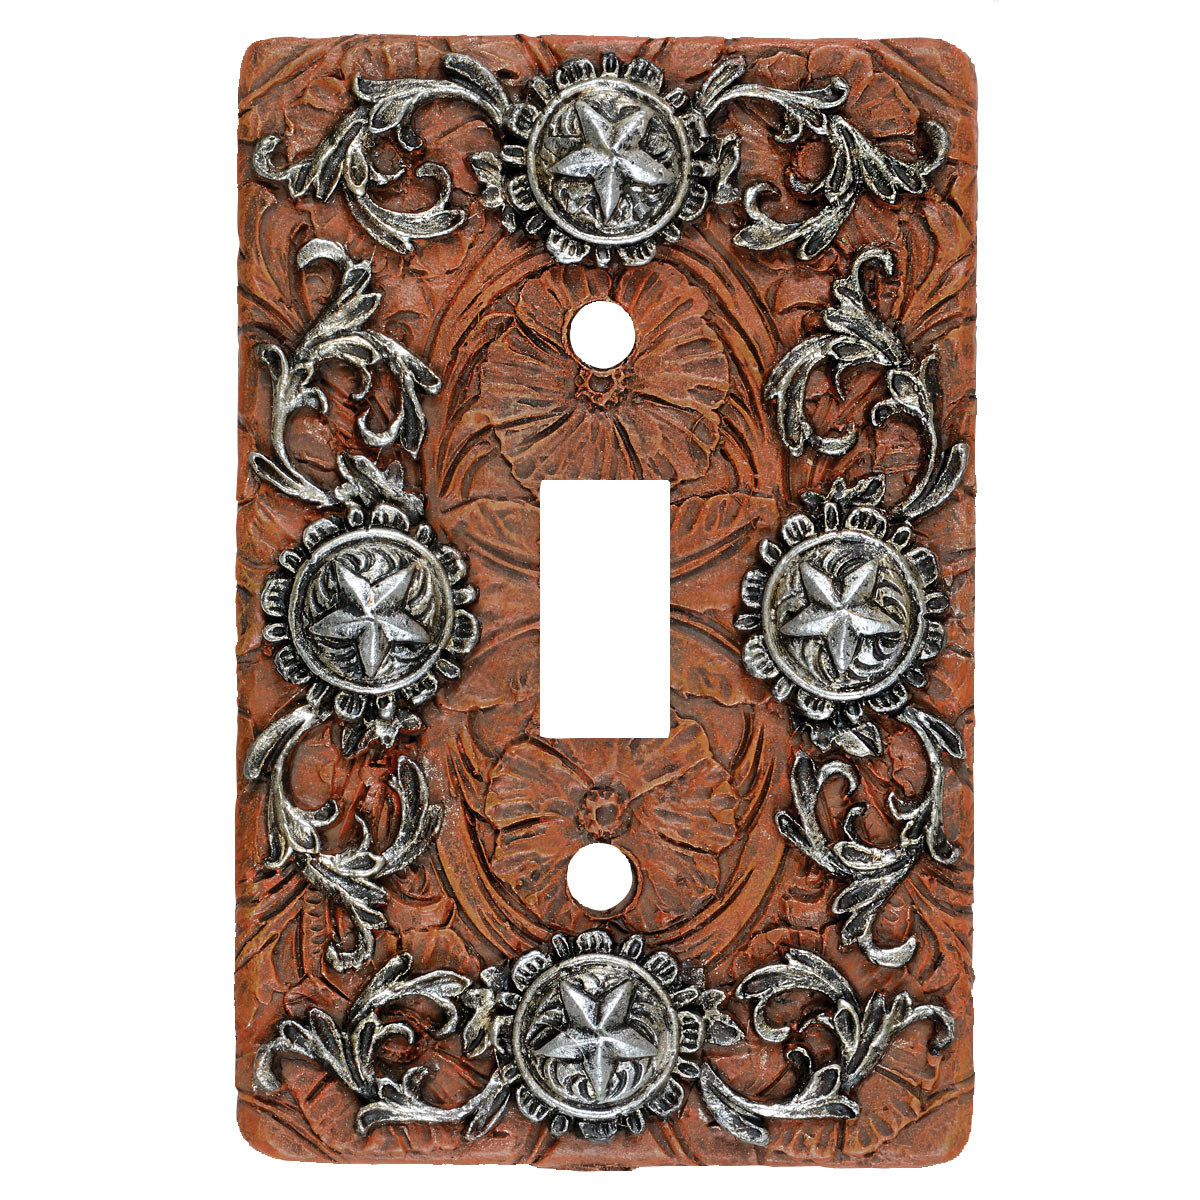 Silver Stars Single Switch Plate - CLEARANCE